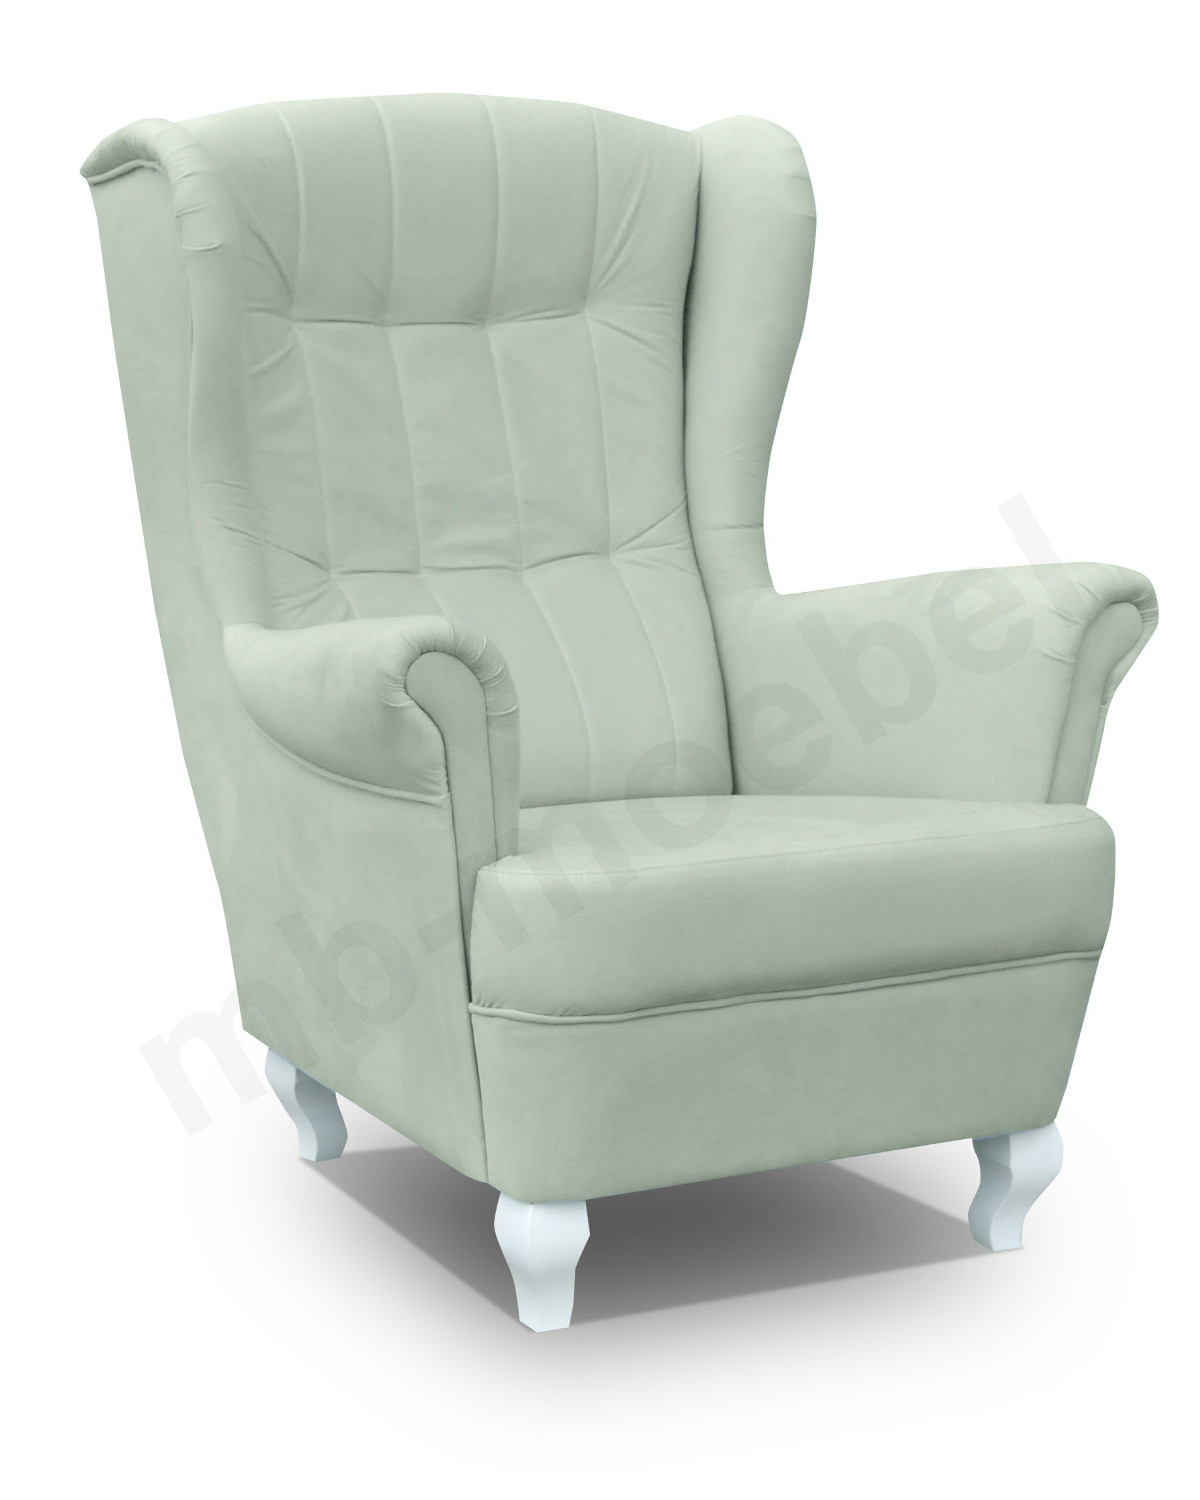 Ohrensessel Designklassiker Ohrensessel Stanford Loungesessel Wohnzimmersessel Relax